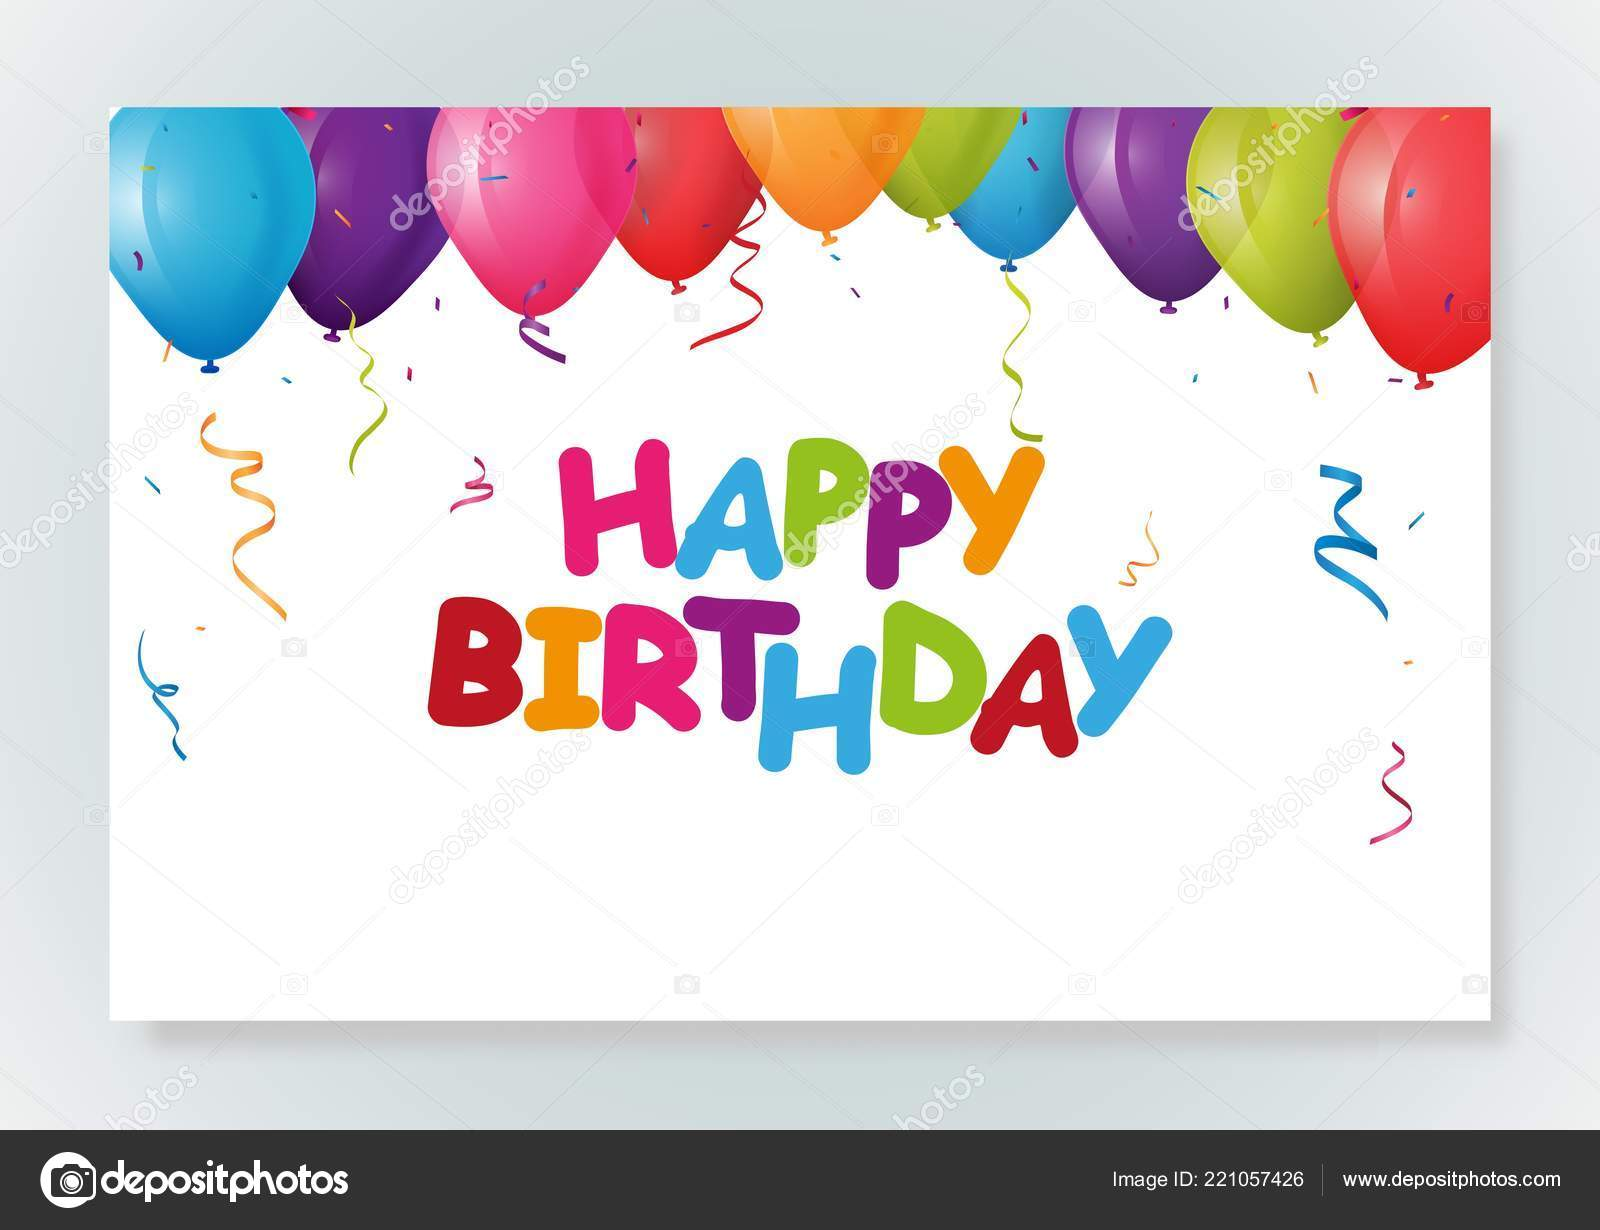 Vektor Illustration Von Happy Birthday Greeting Card Design Mit Konfetti Stockvektor